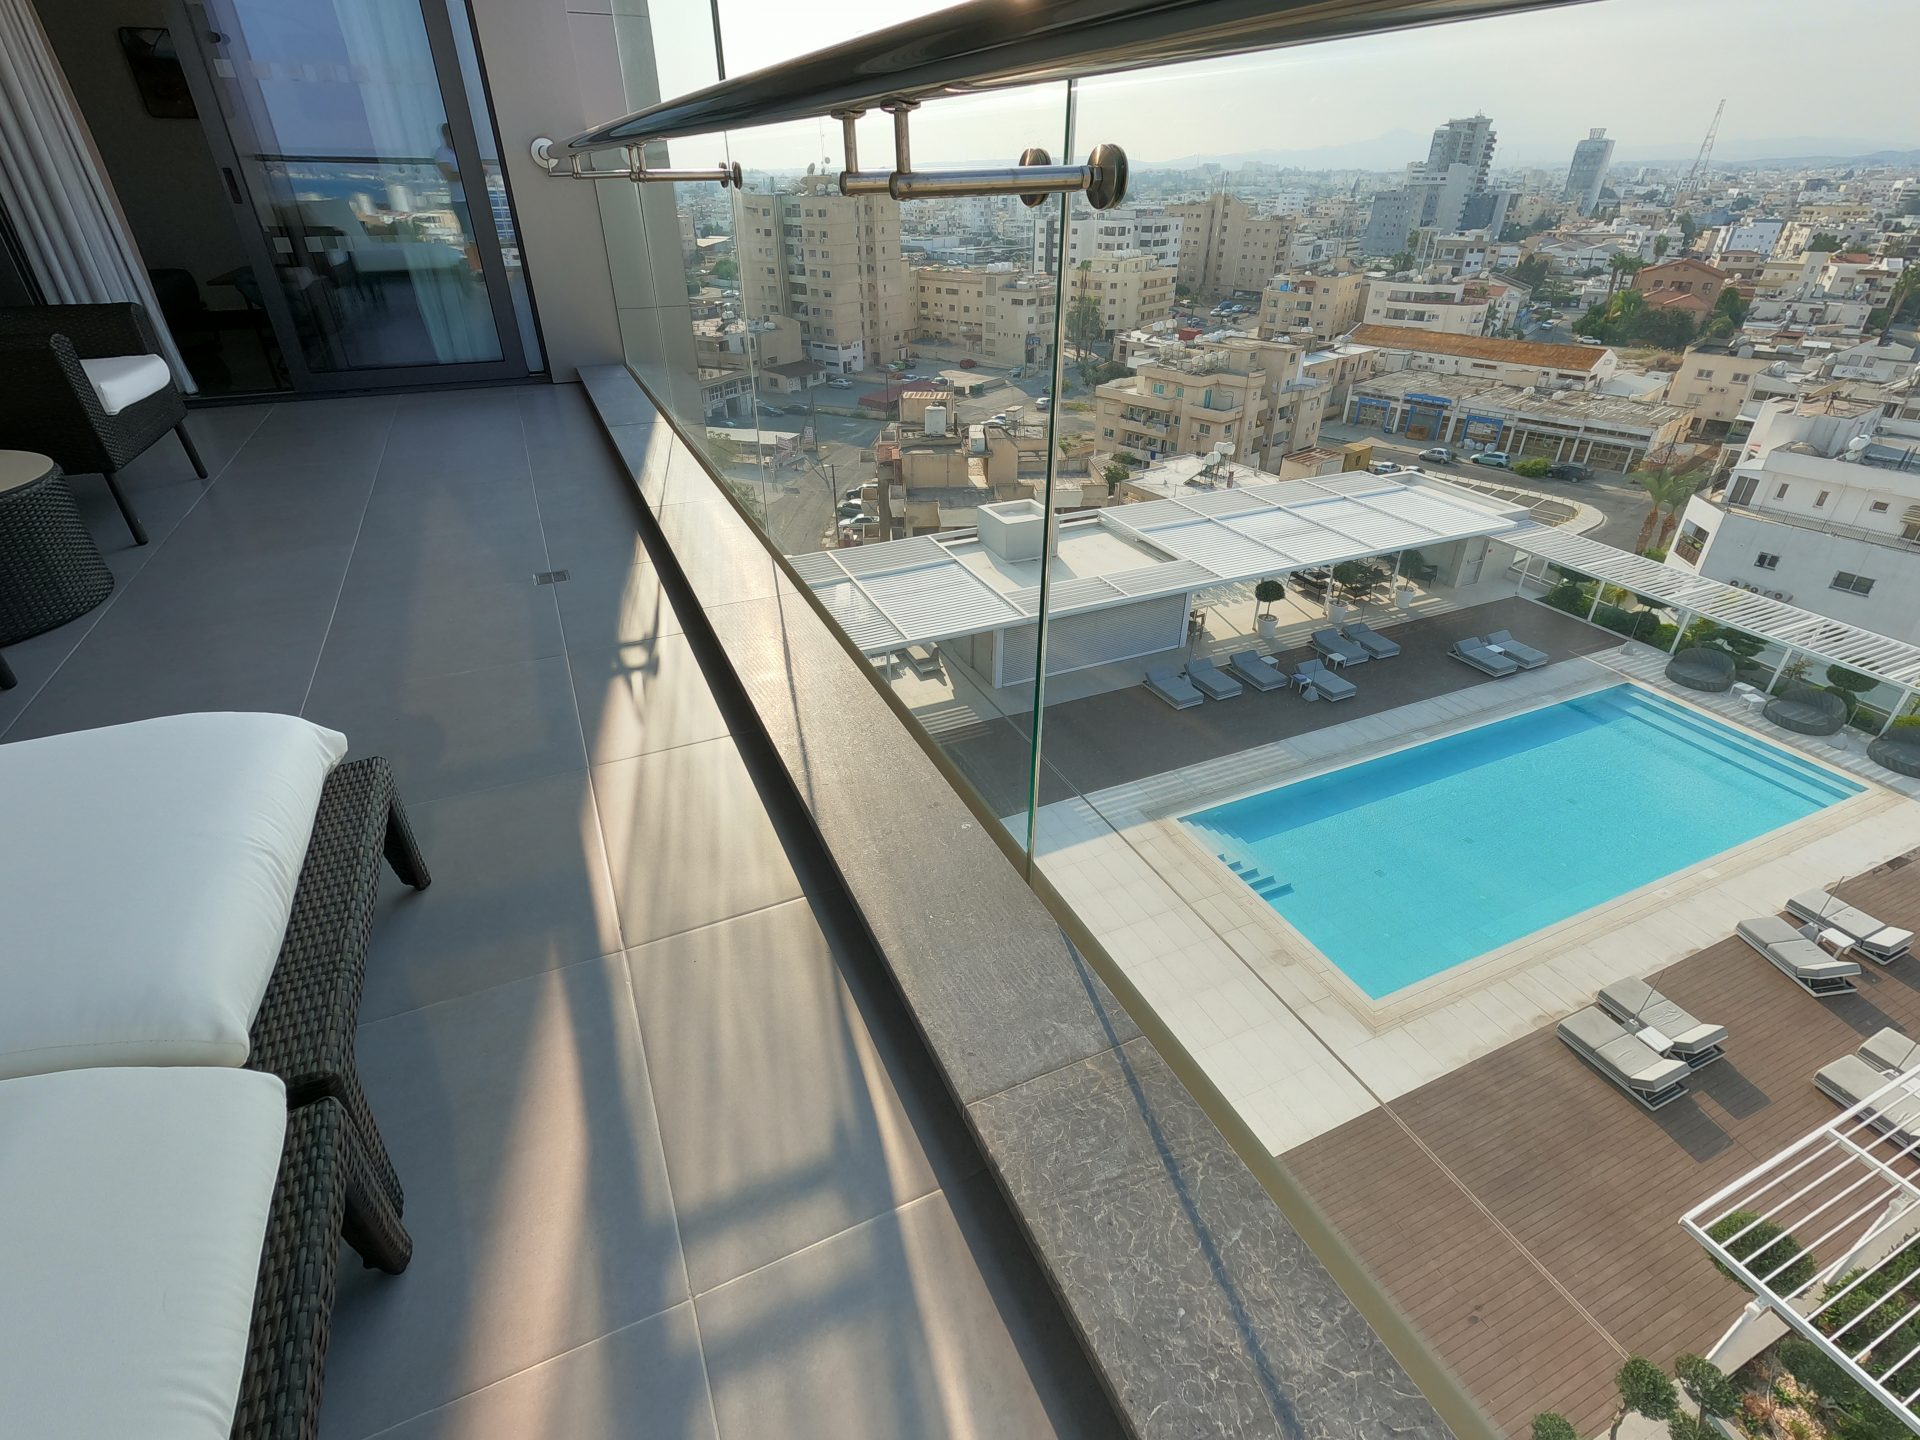 Outdoor pool and Larnaca city view